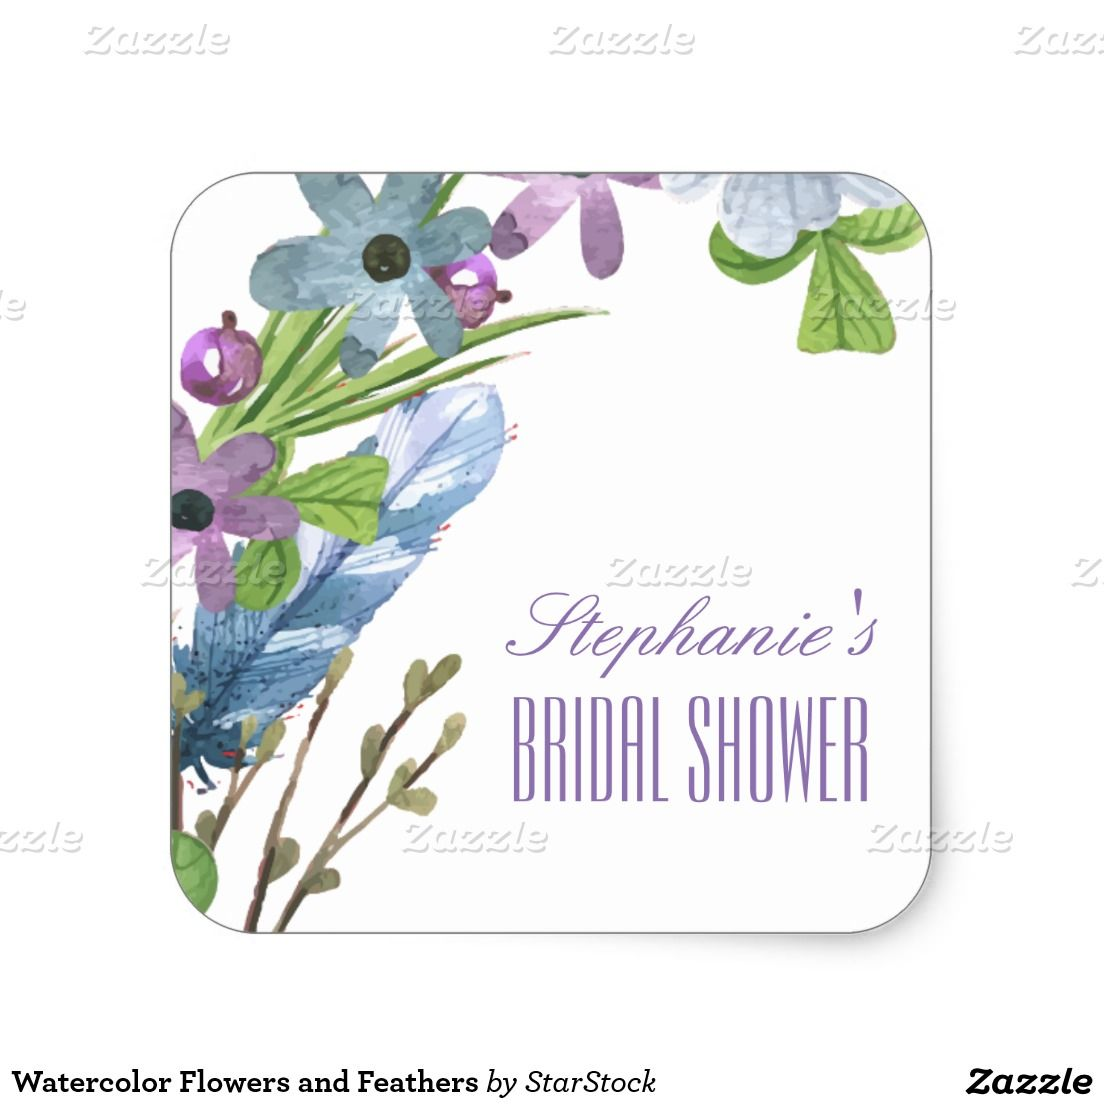 Watercolor Flowers and Feathers Square Bridal Shower Sticker